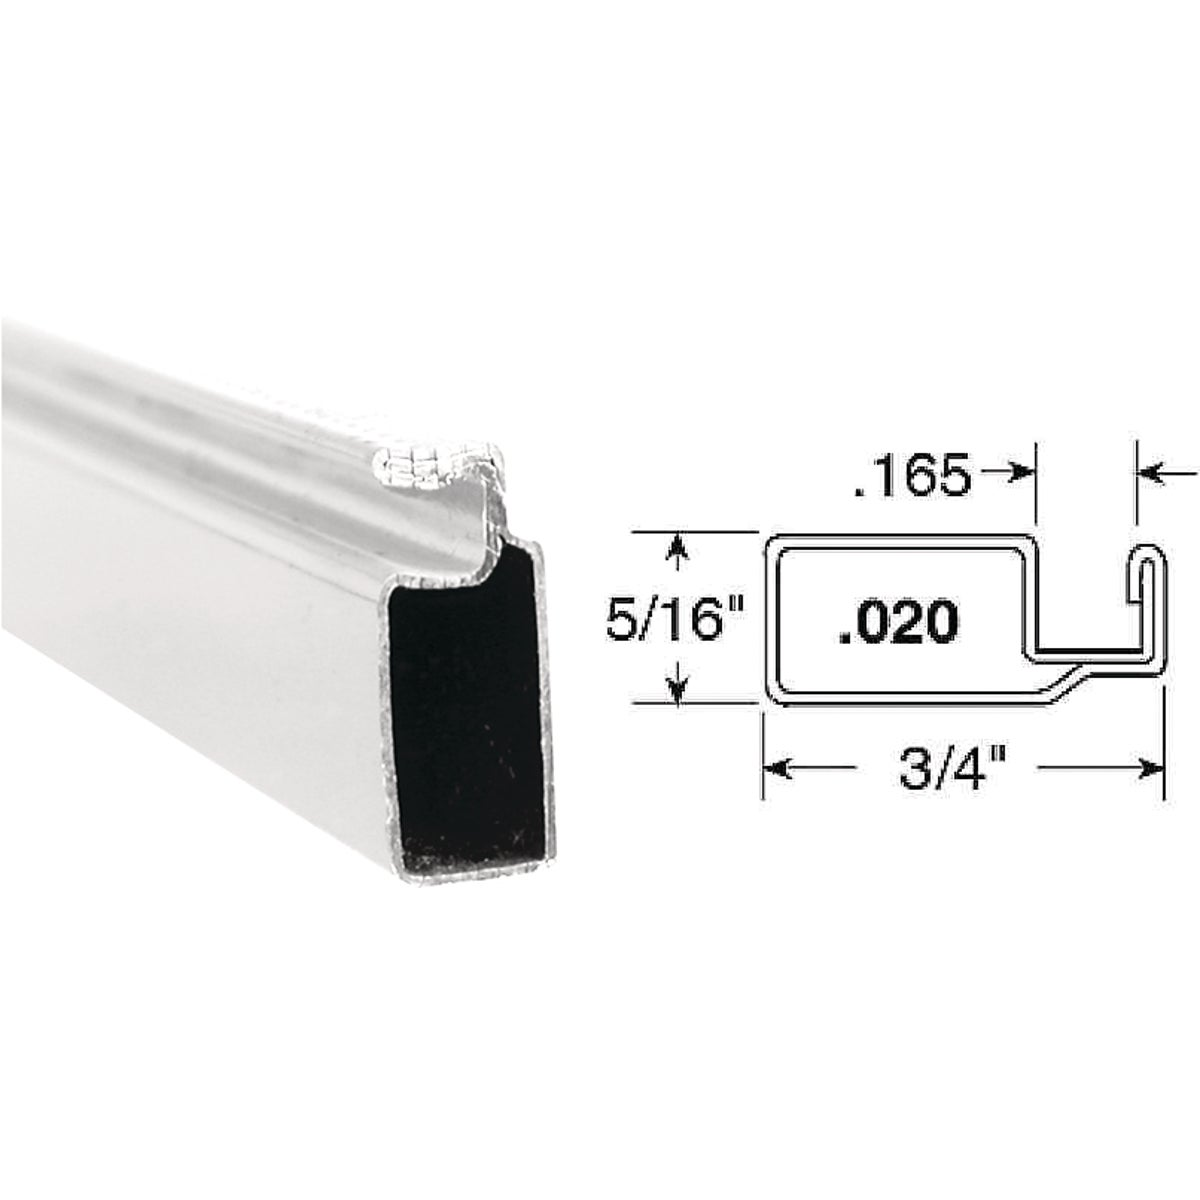 3/4X5/16X94WHT SCN FRAME - PL14080 by Prime Line Products